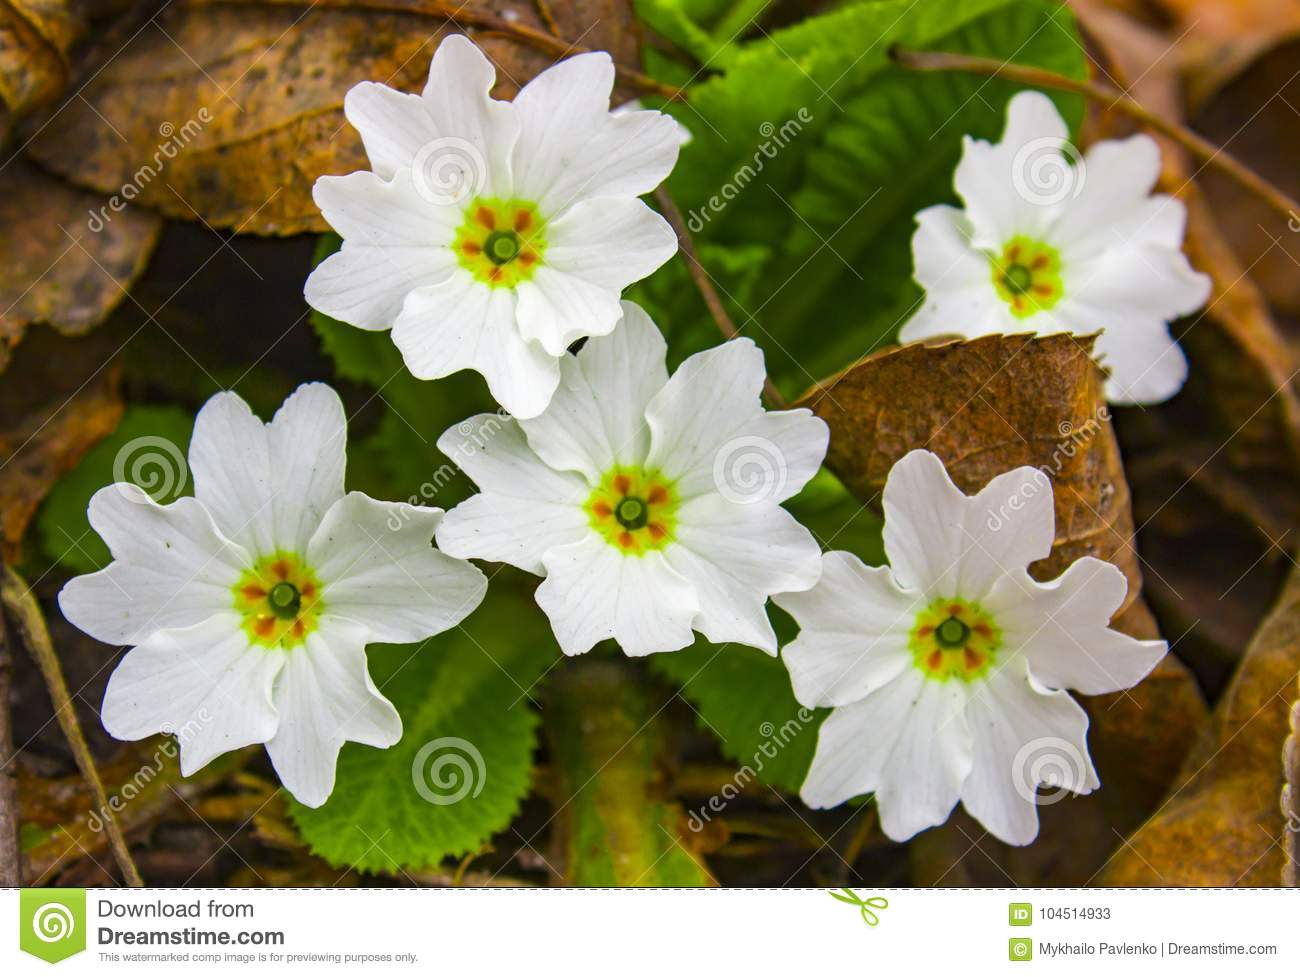 Primrose A Flower That Blooms In Early Spring And Has A Varied